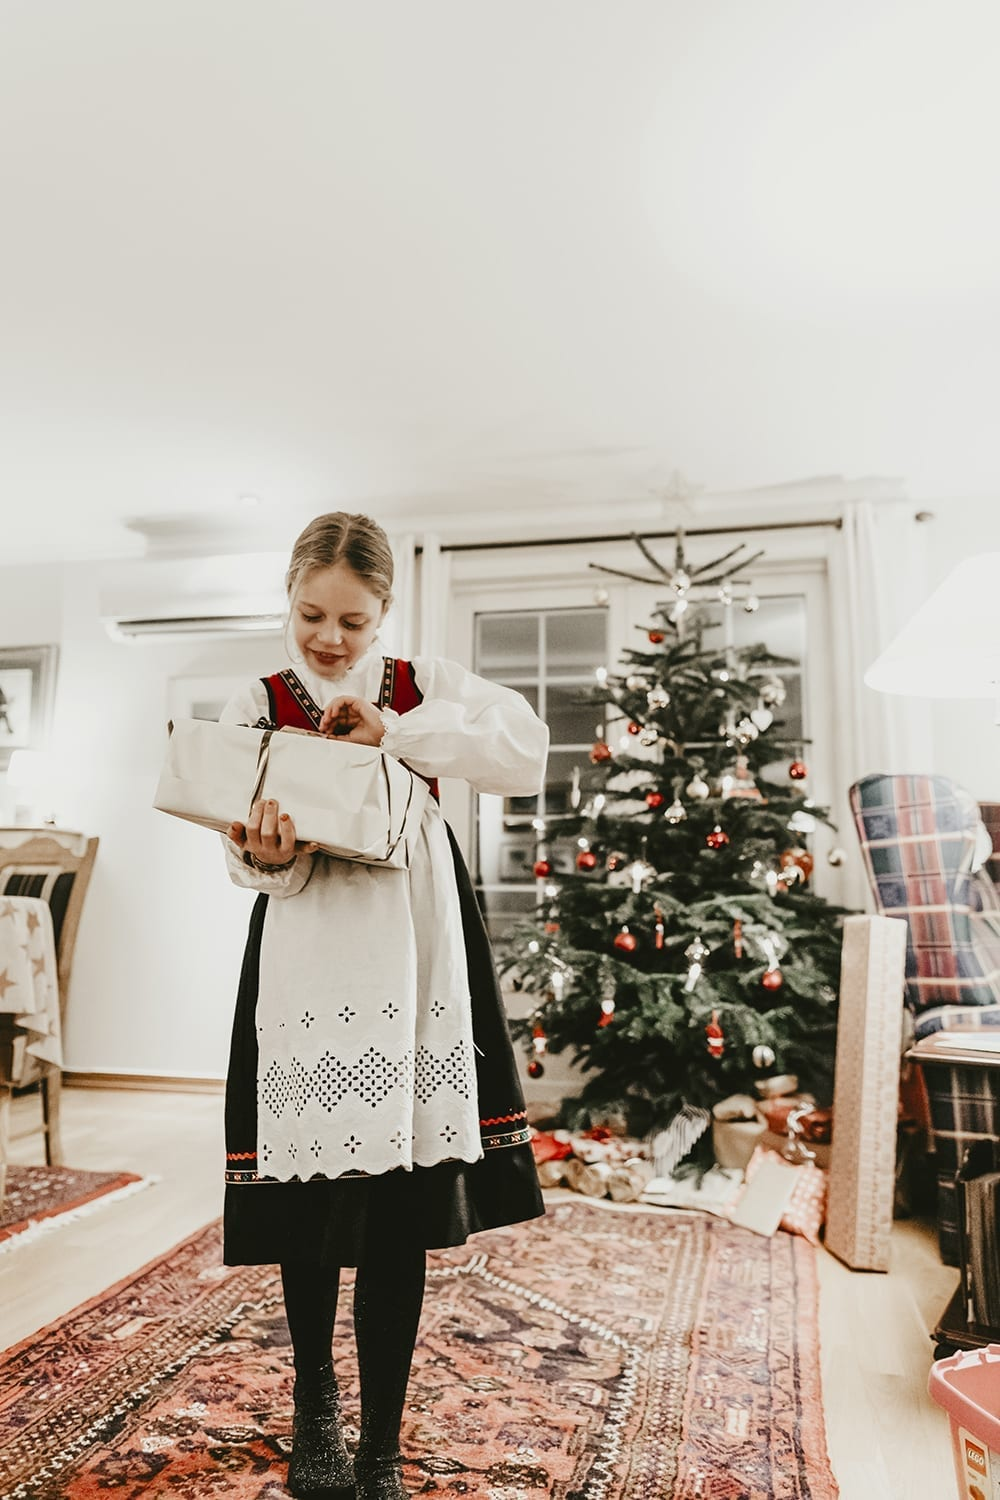 photo of girl in norwegian bunad in front of a Christmas tree, opening a gift